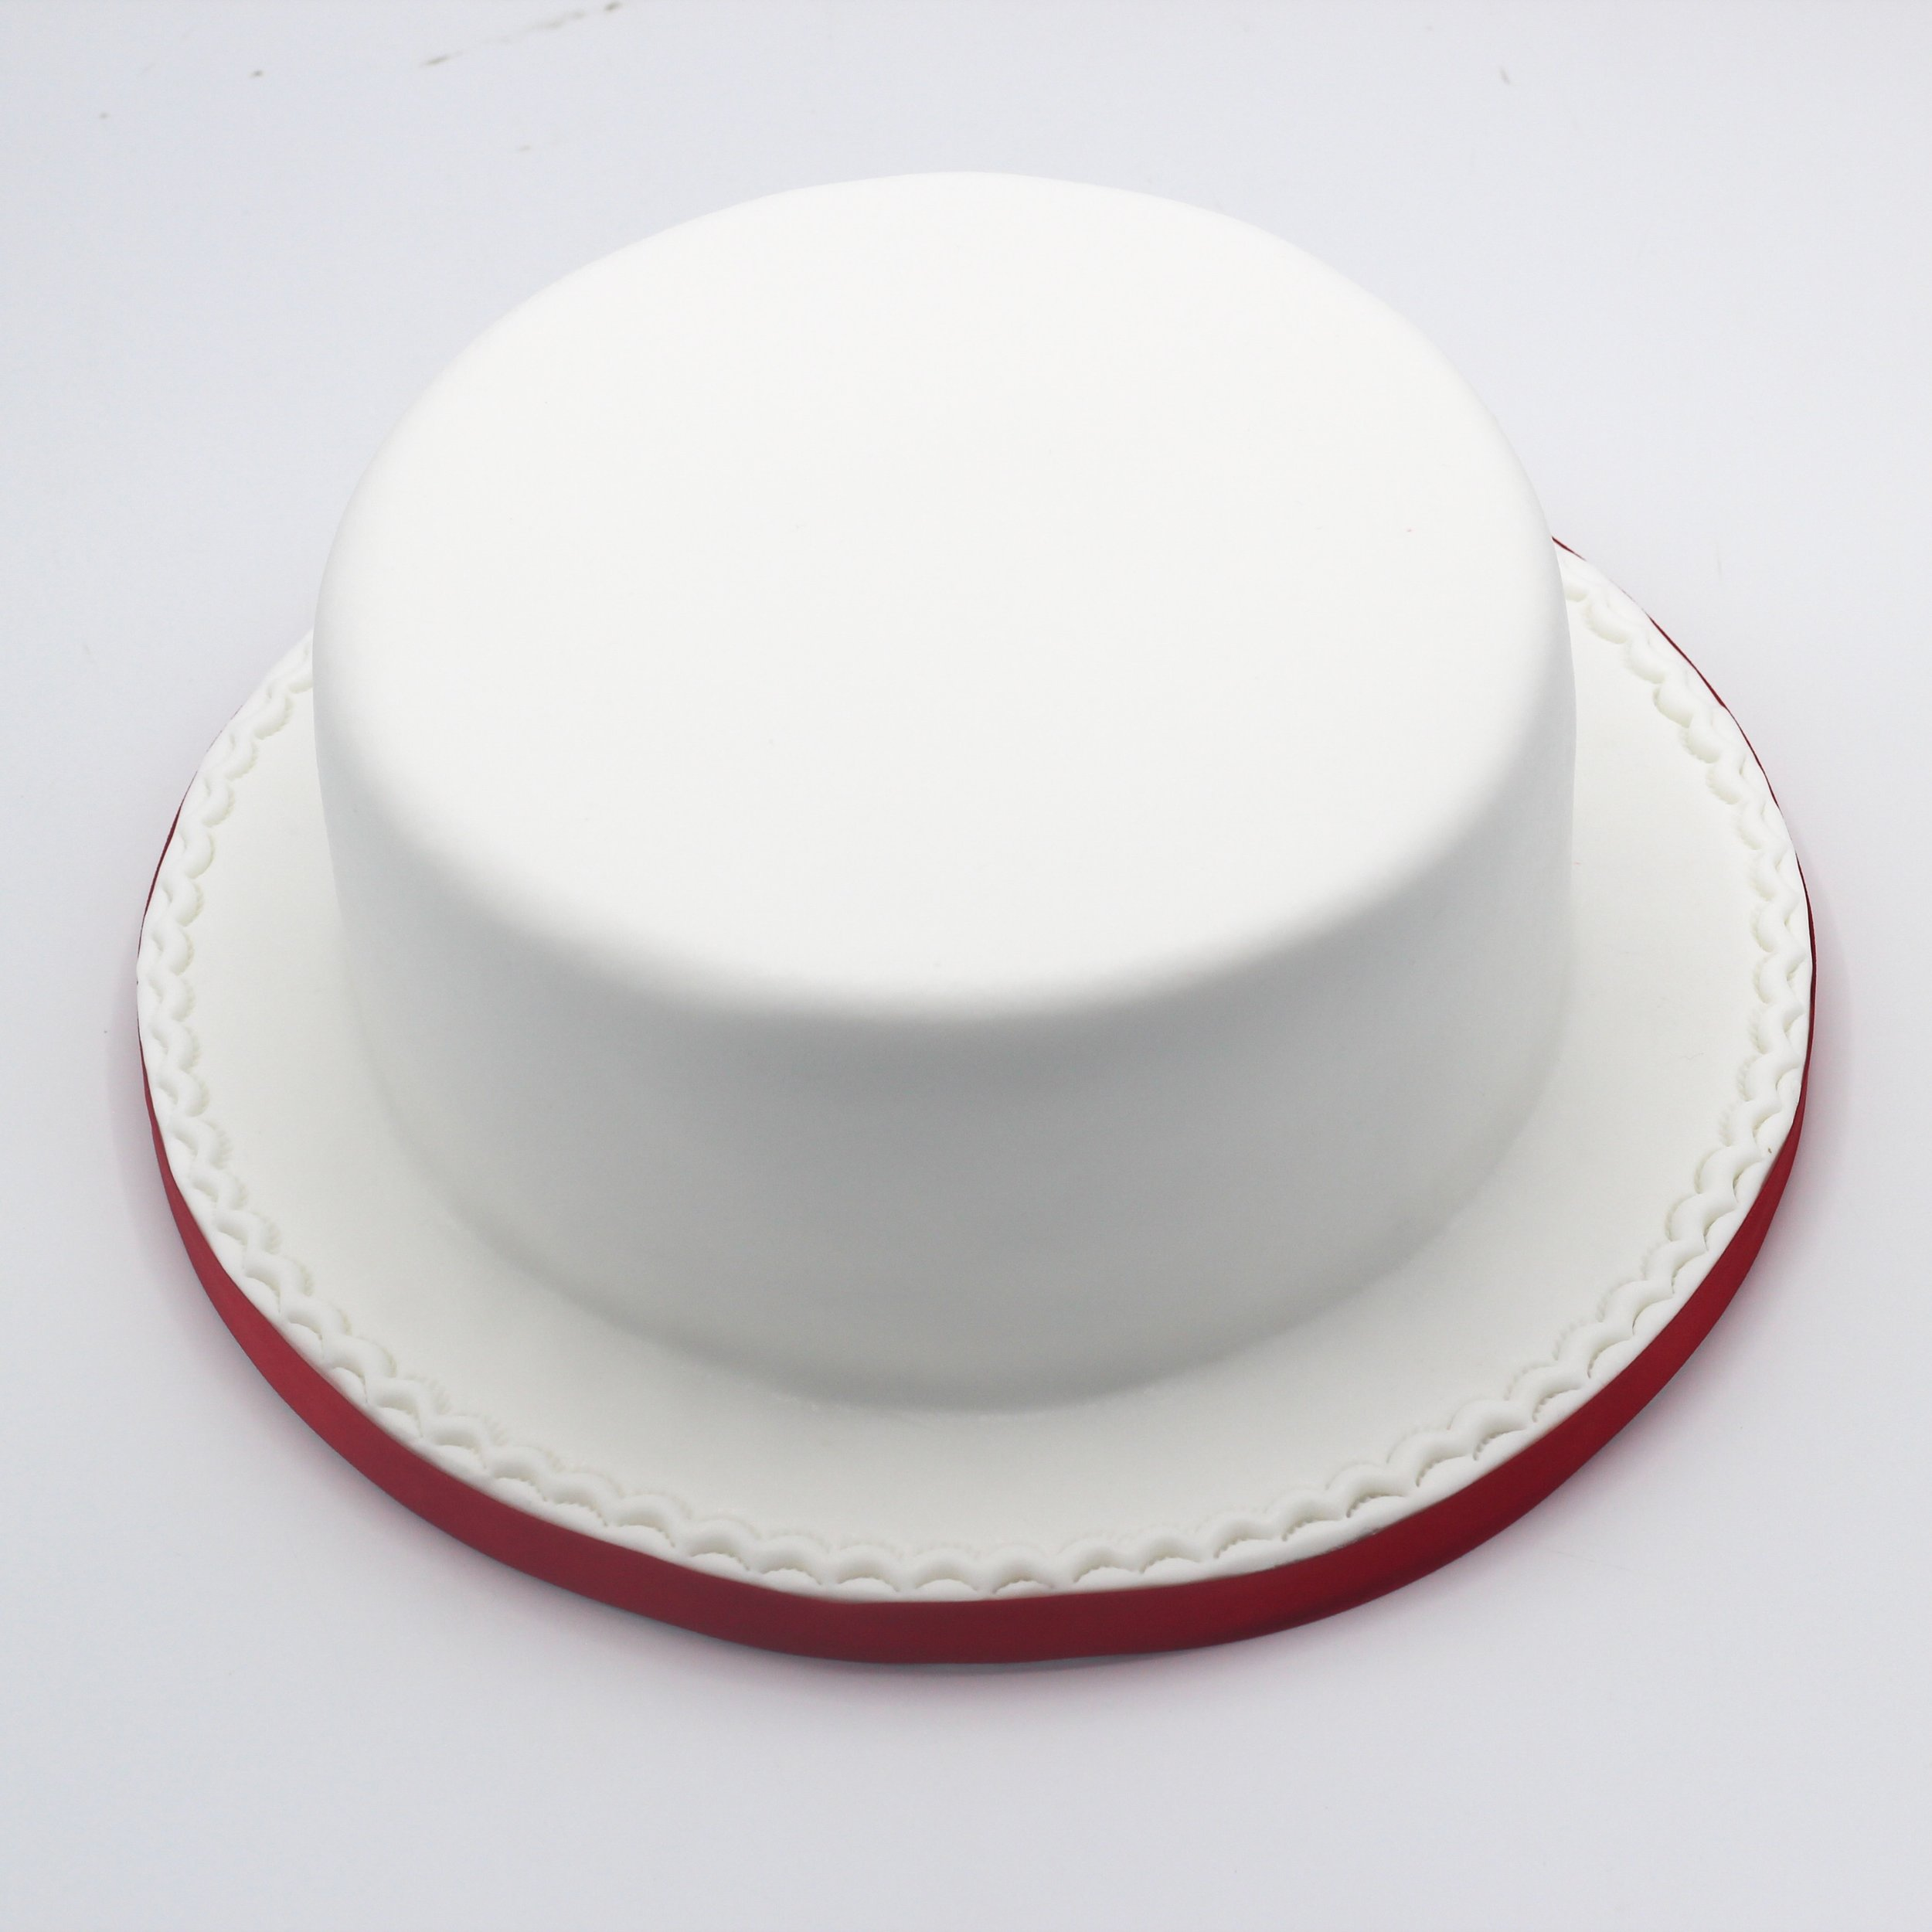 """Plain fondant sponge cake - 6"""" from £548"""" from £6010"""" from £6712"""" from £80The Nocturnal Baker uses luxury fondant brand Massa Ticino from Switzerland which not only tastes delicious but is also moisture and heat resistant so whatever the weather we can guarantee your cake will continue to stand proud!Plain fondant cakes include a minimum 4 inch tall, four layer, sponge cake on an iced and crimped drum, wrapped in ribbon and stored in a lidded cake box.Bespoke modelled features are quoted as extra."""